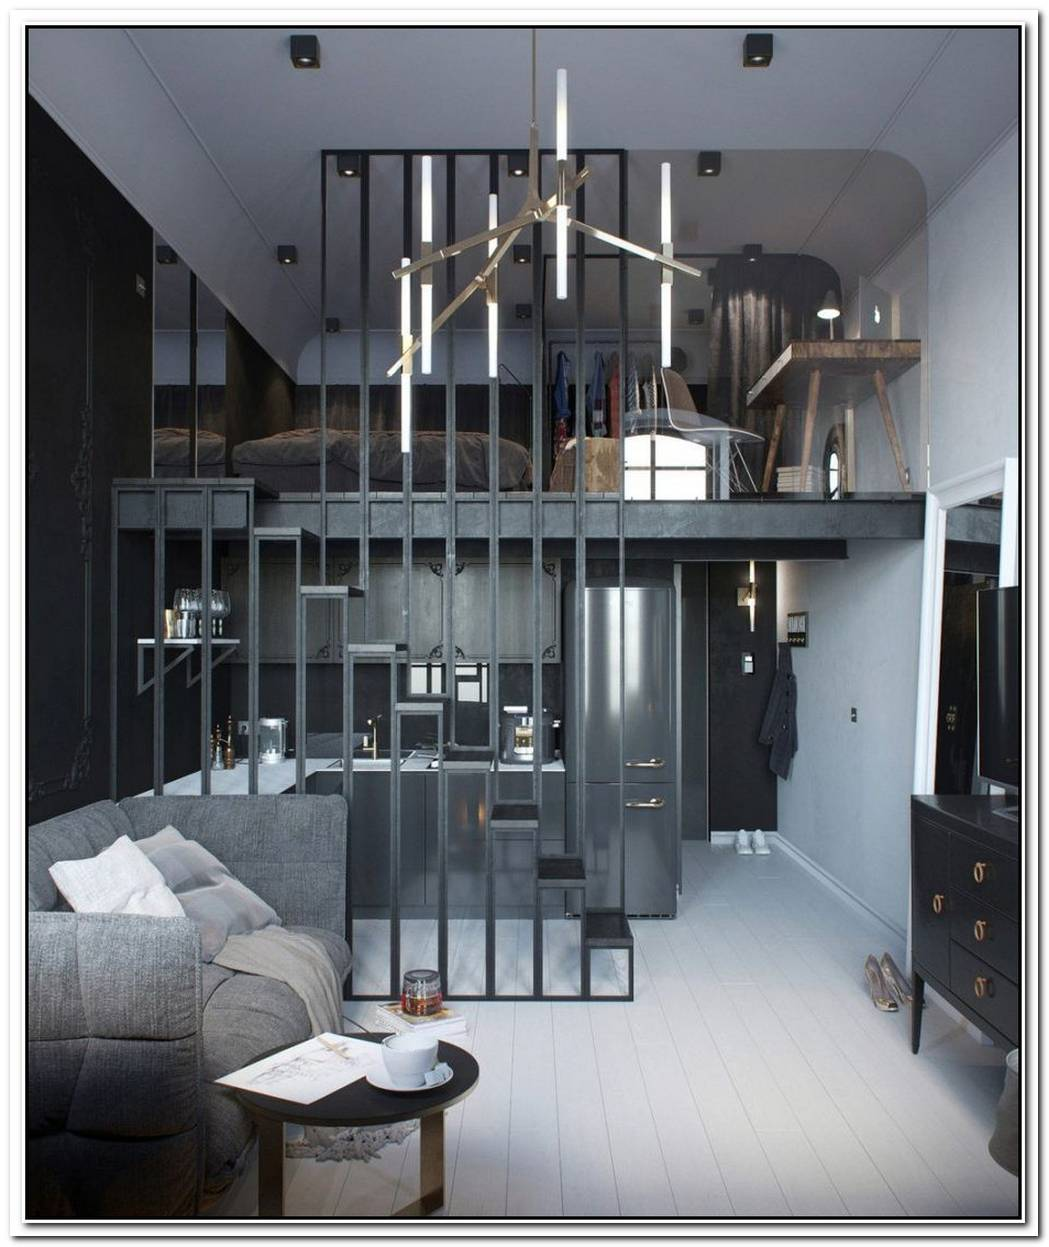 48 Square Meter Apartment With A Bright And Functional Interior Décor